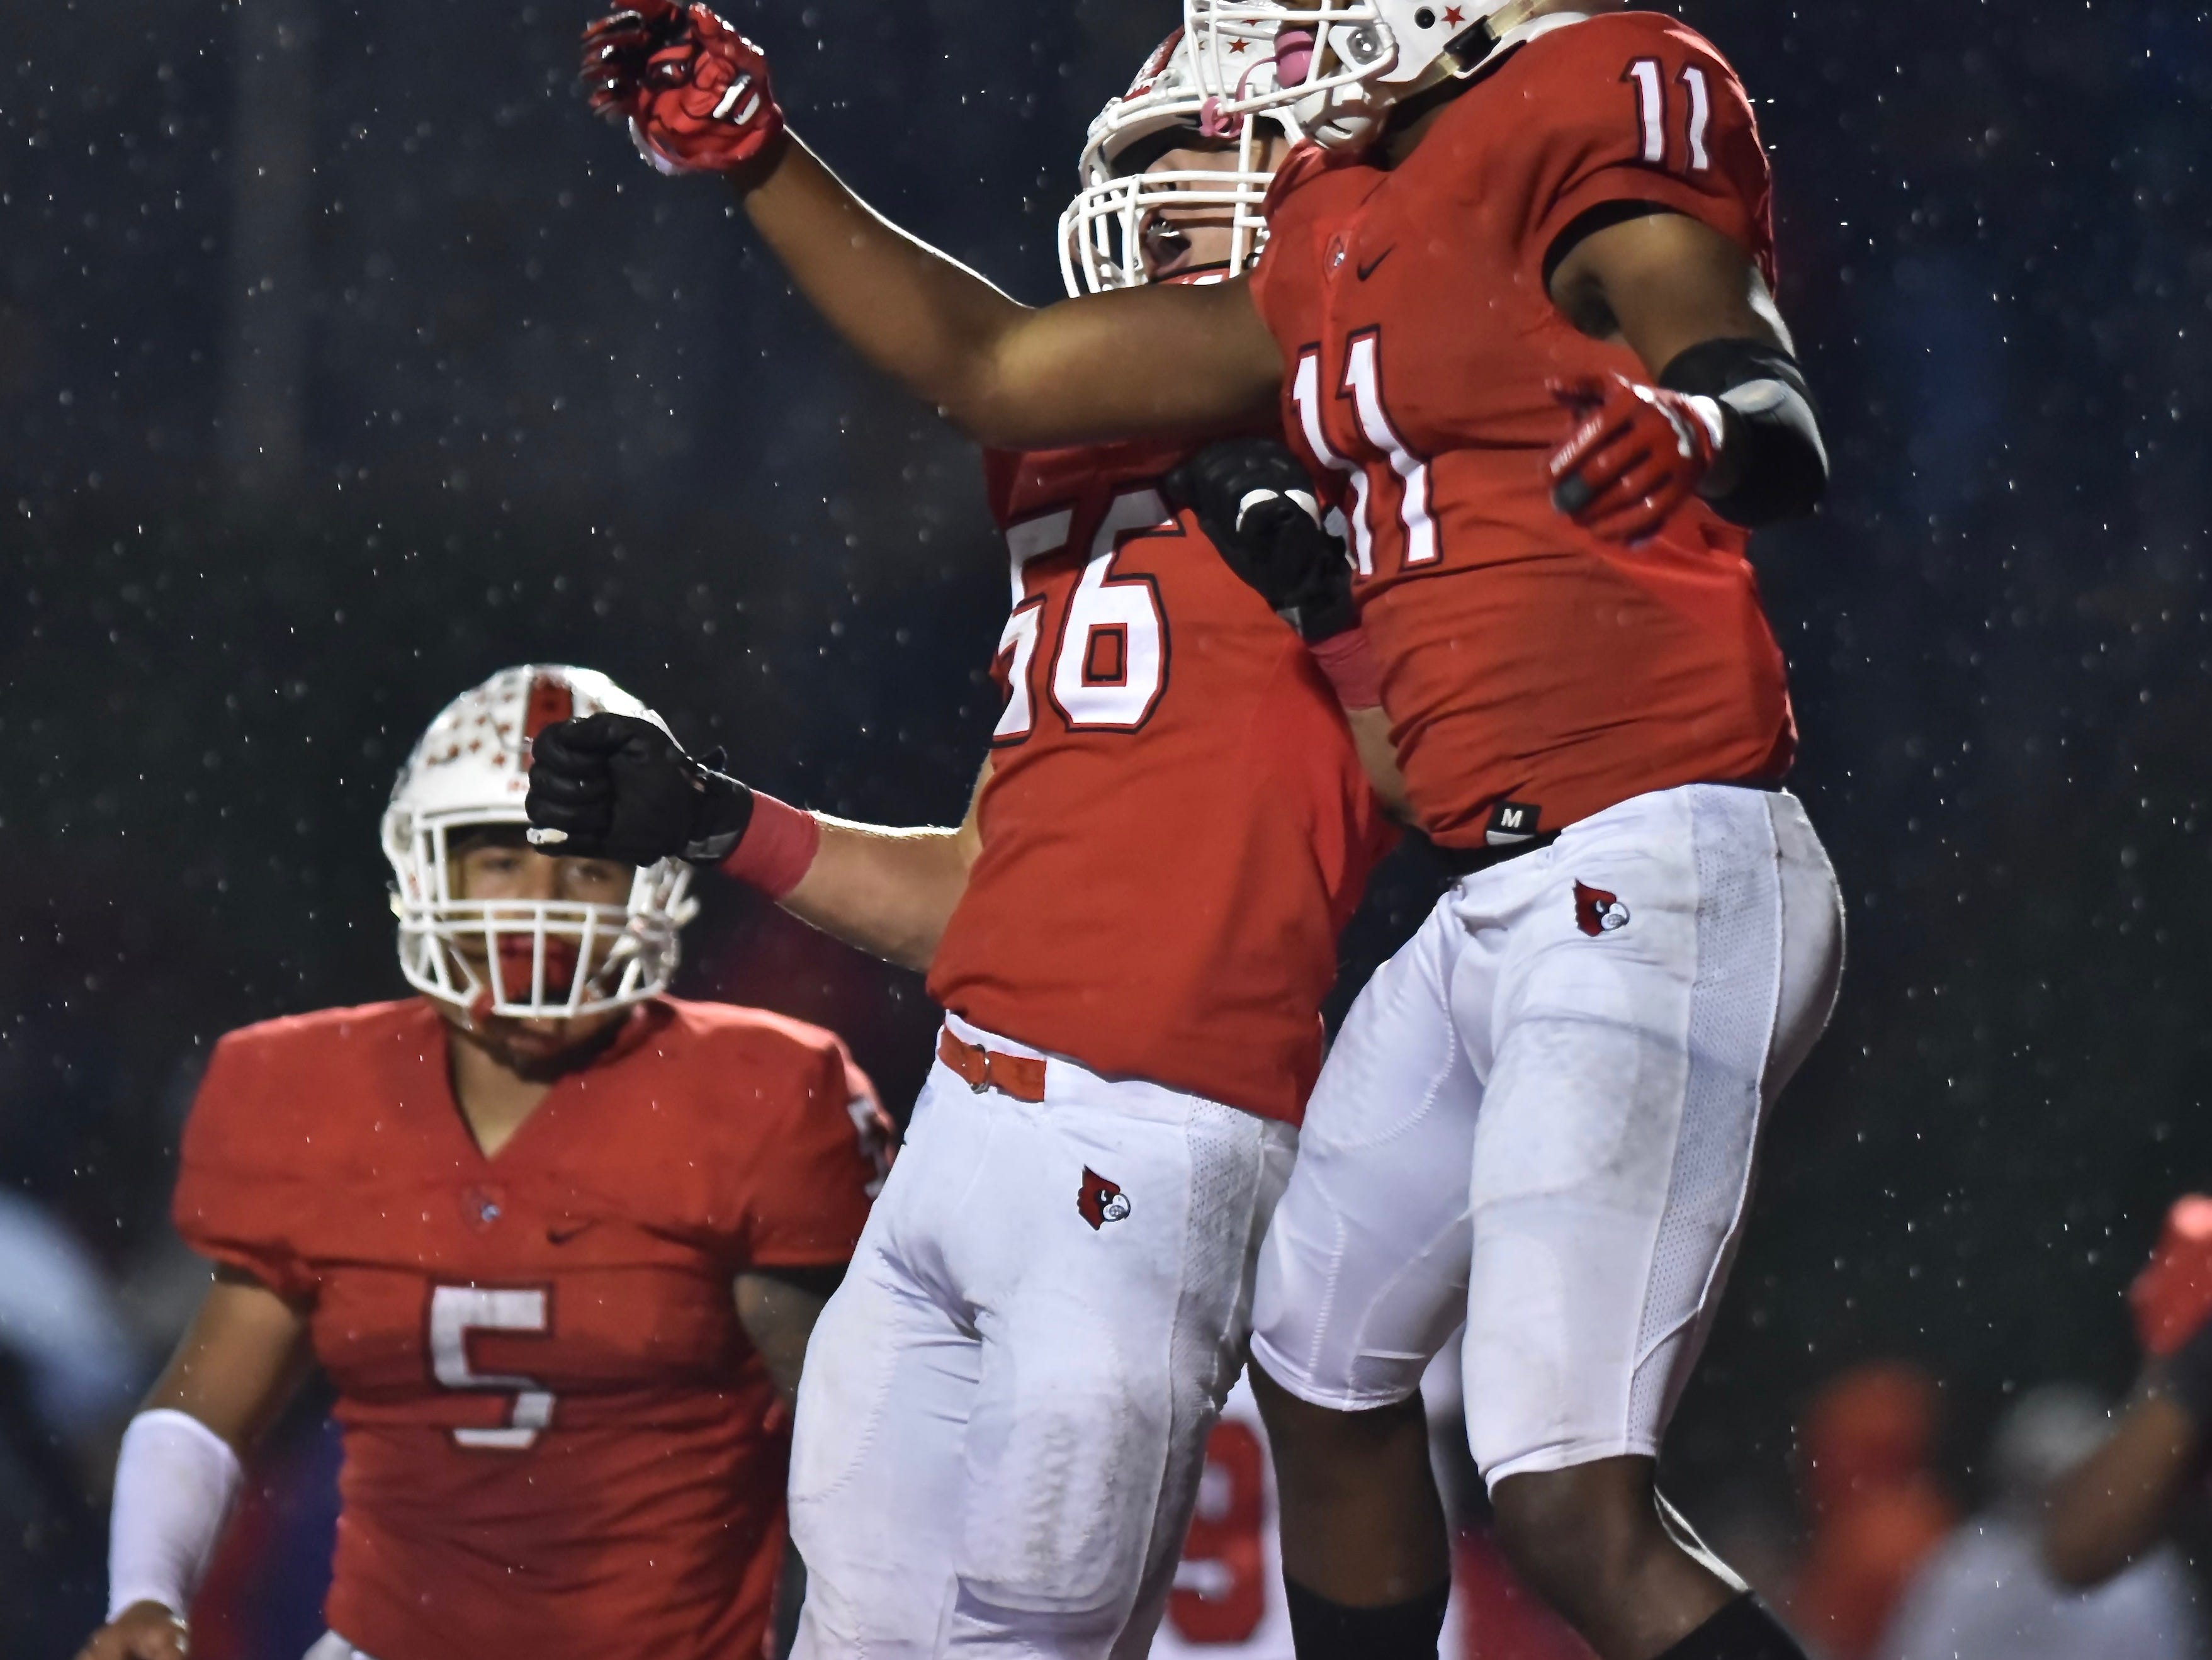 Colerain's Elijah Ford and Will Coleman celebrate against Fairfield Friday, Oct. 19, 2018 at Colerain High School